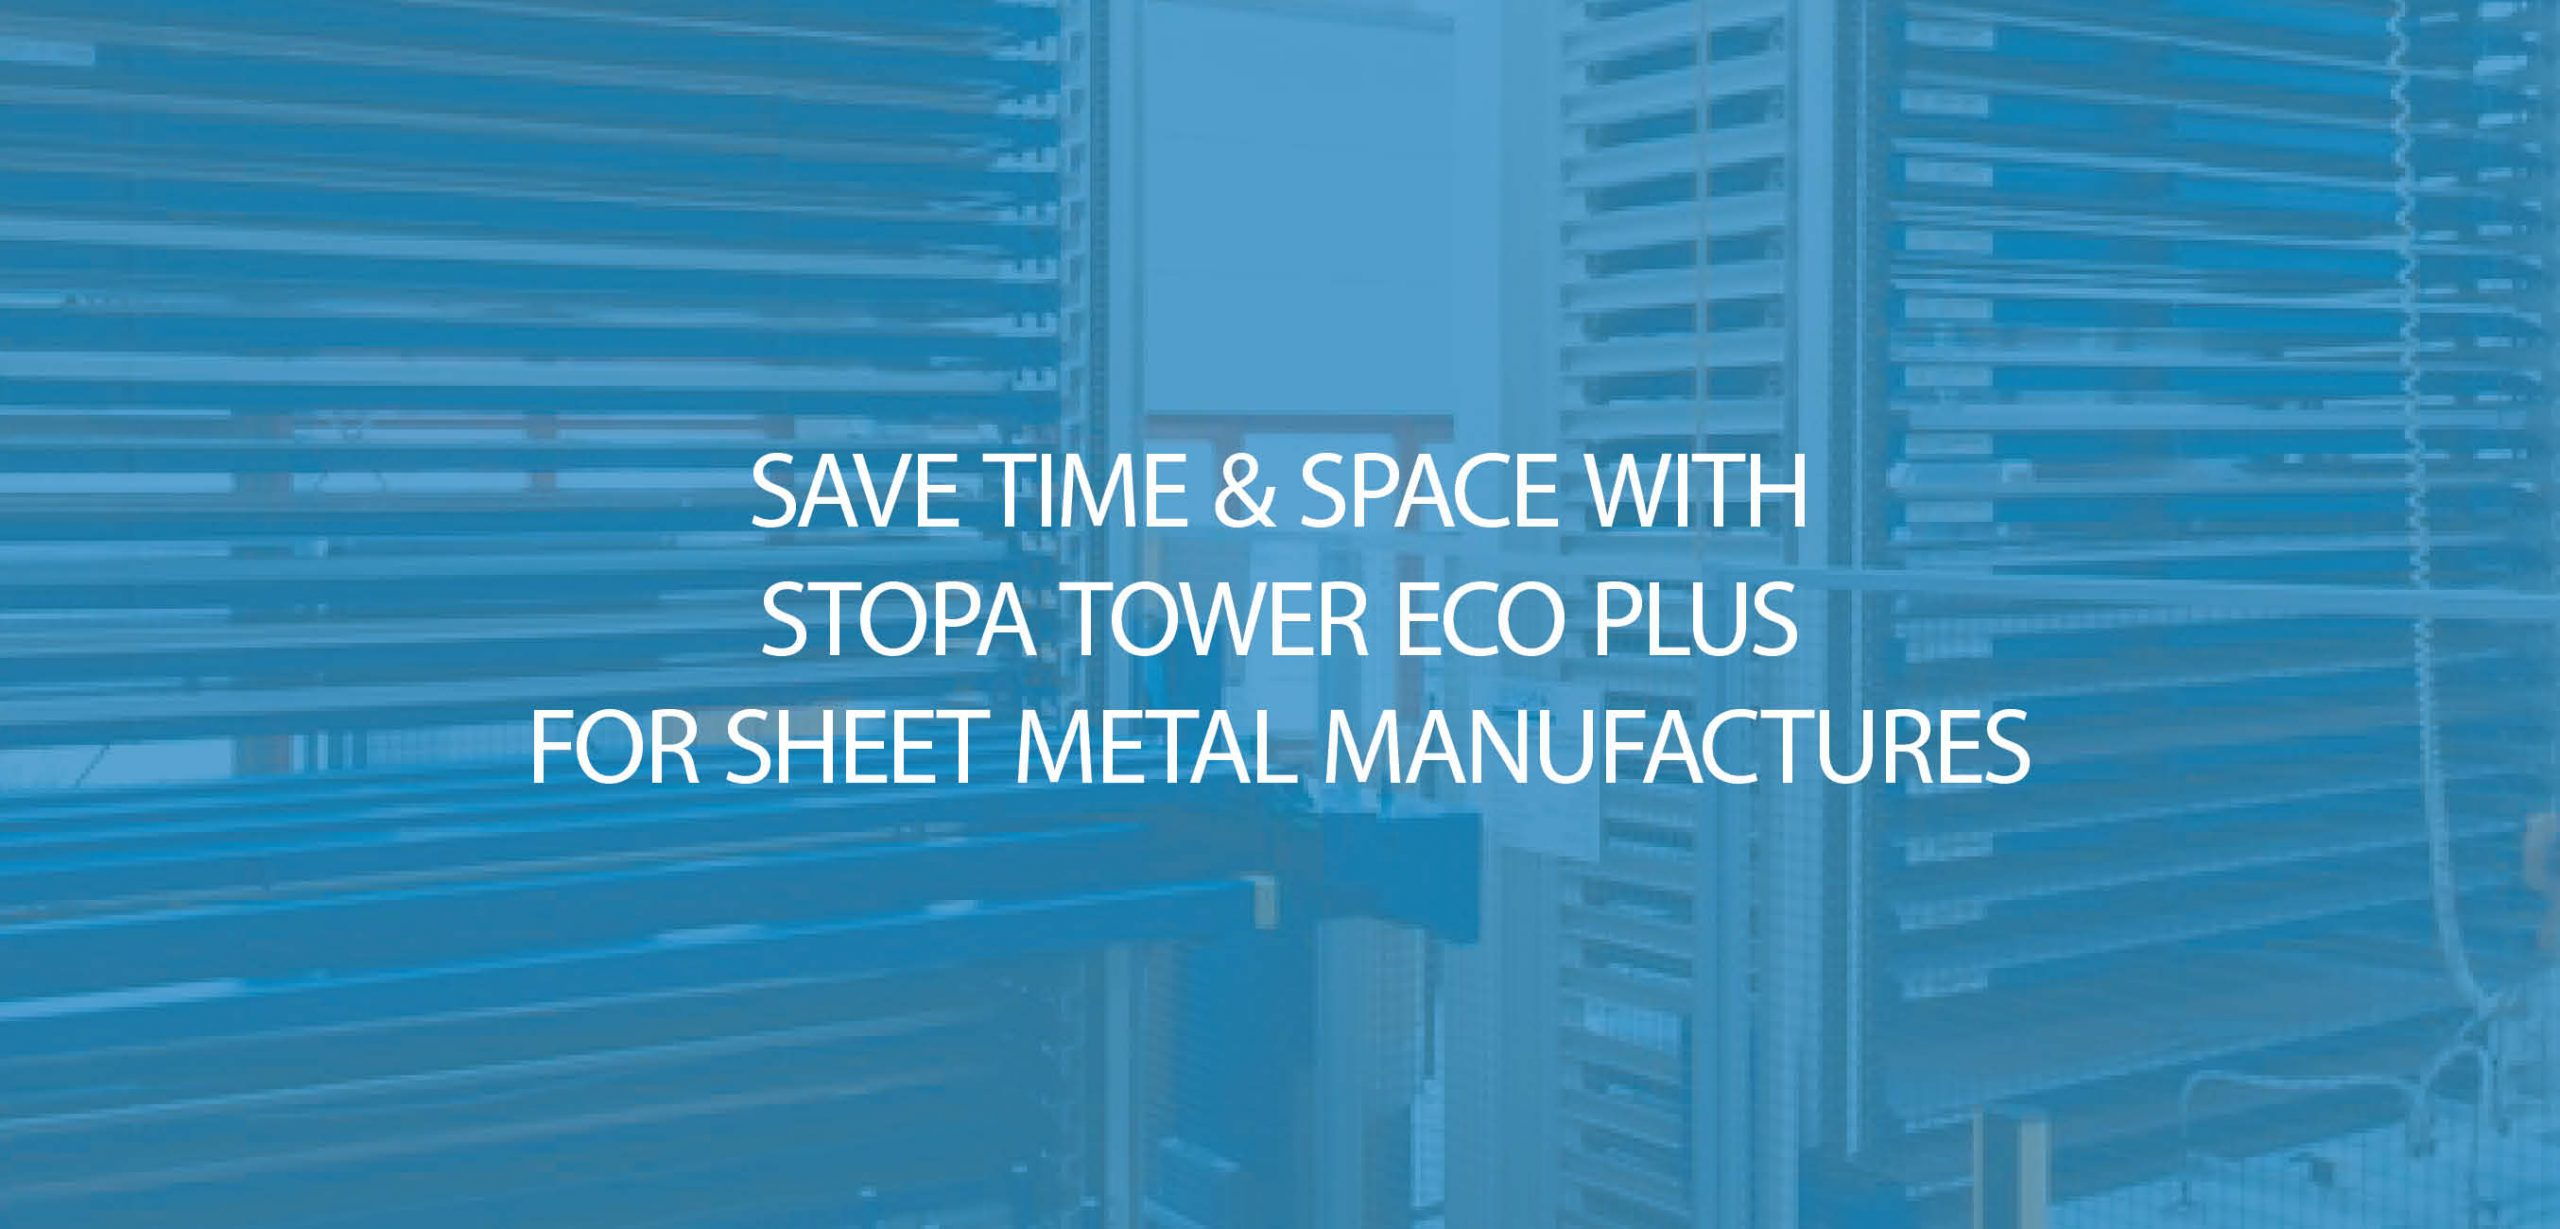 STOPA TOWER ECO Plus